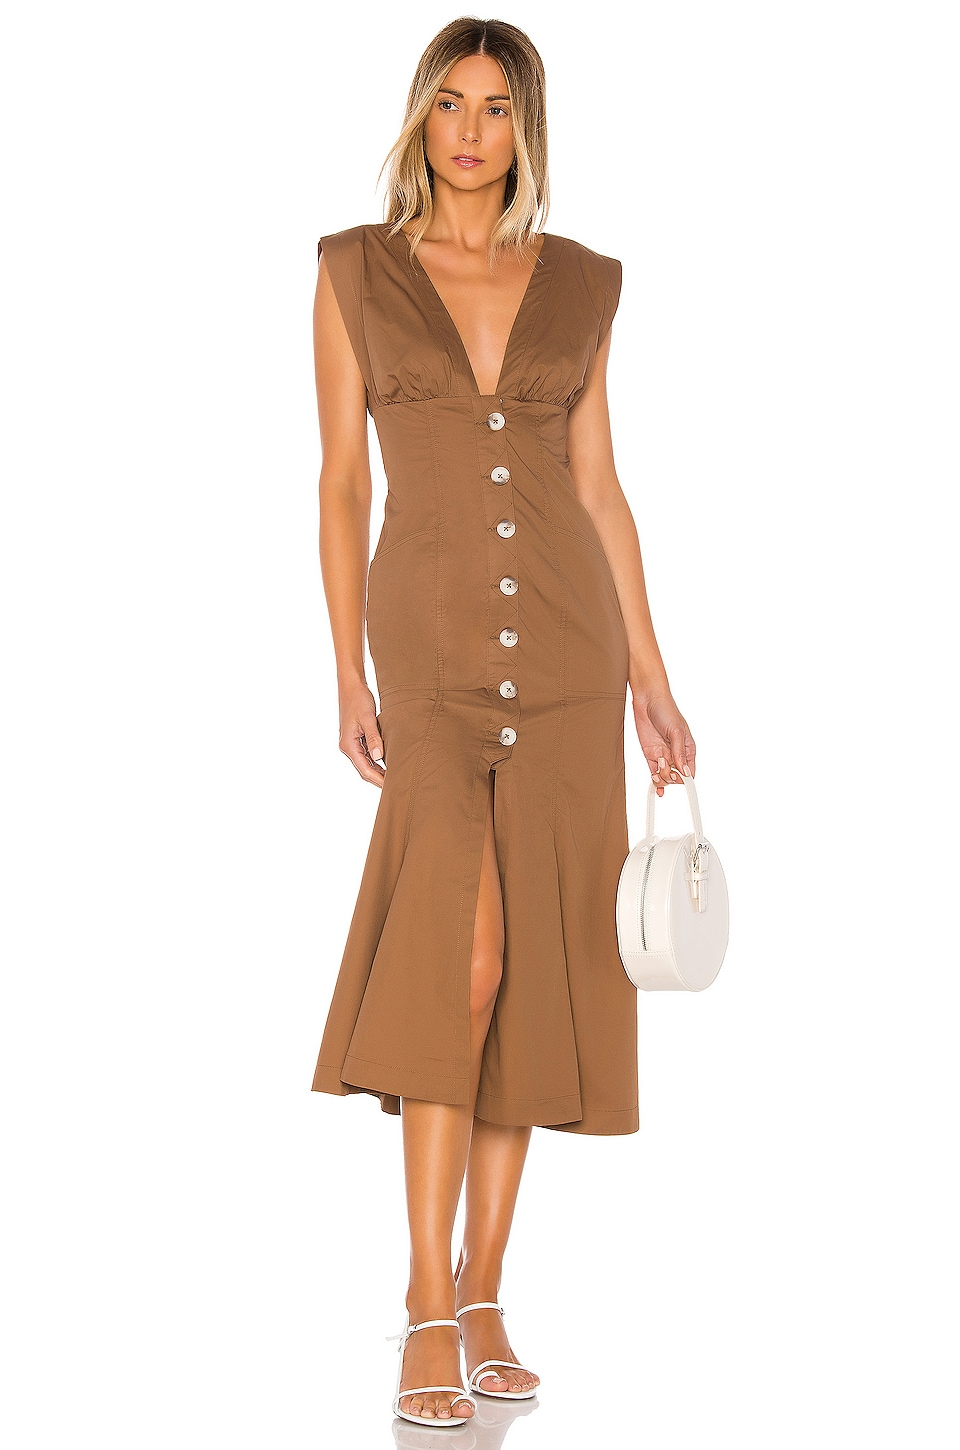 L'Academie The Gabrielle Midi Dress in Pecan Brown